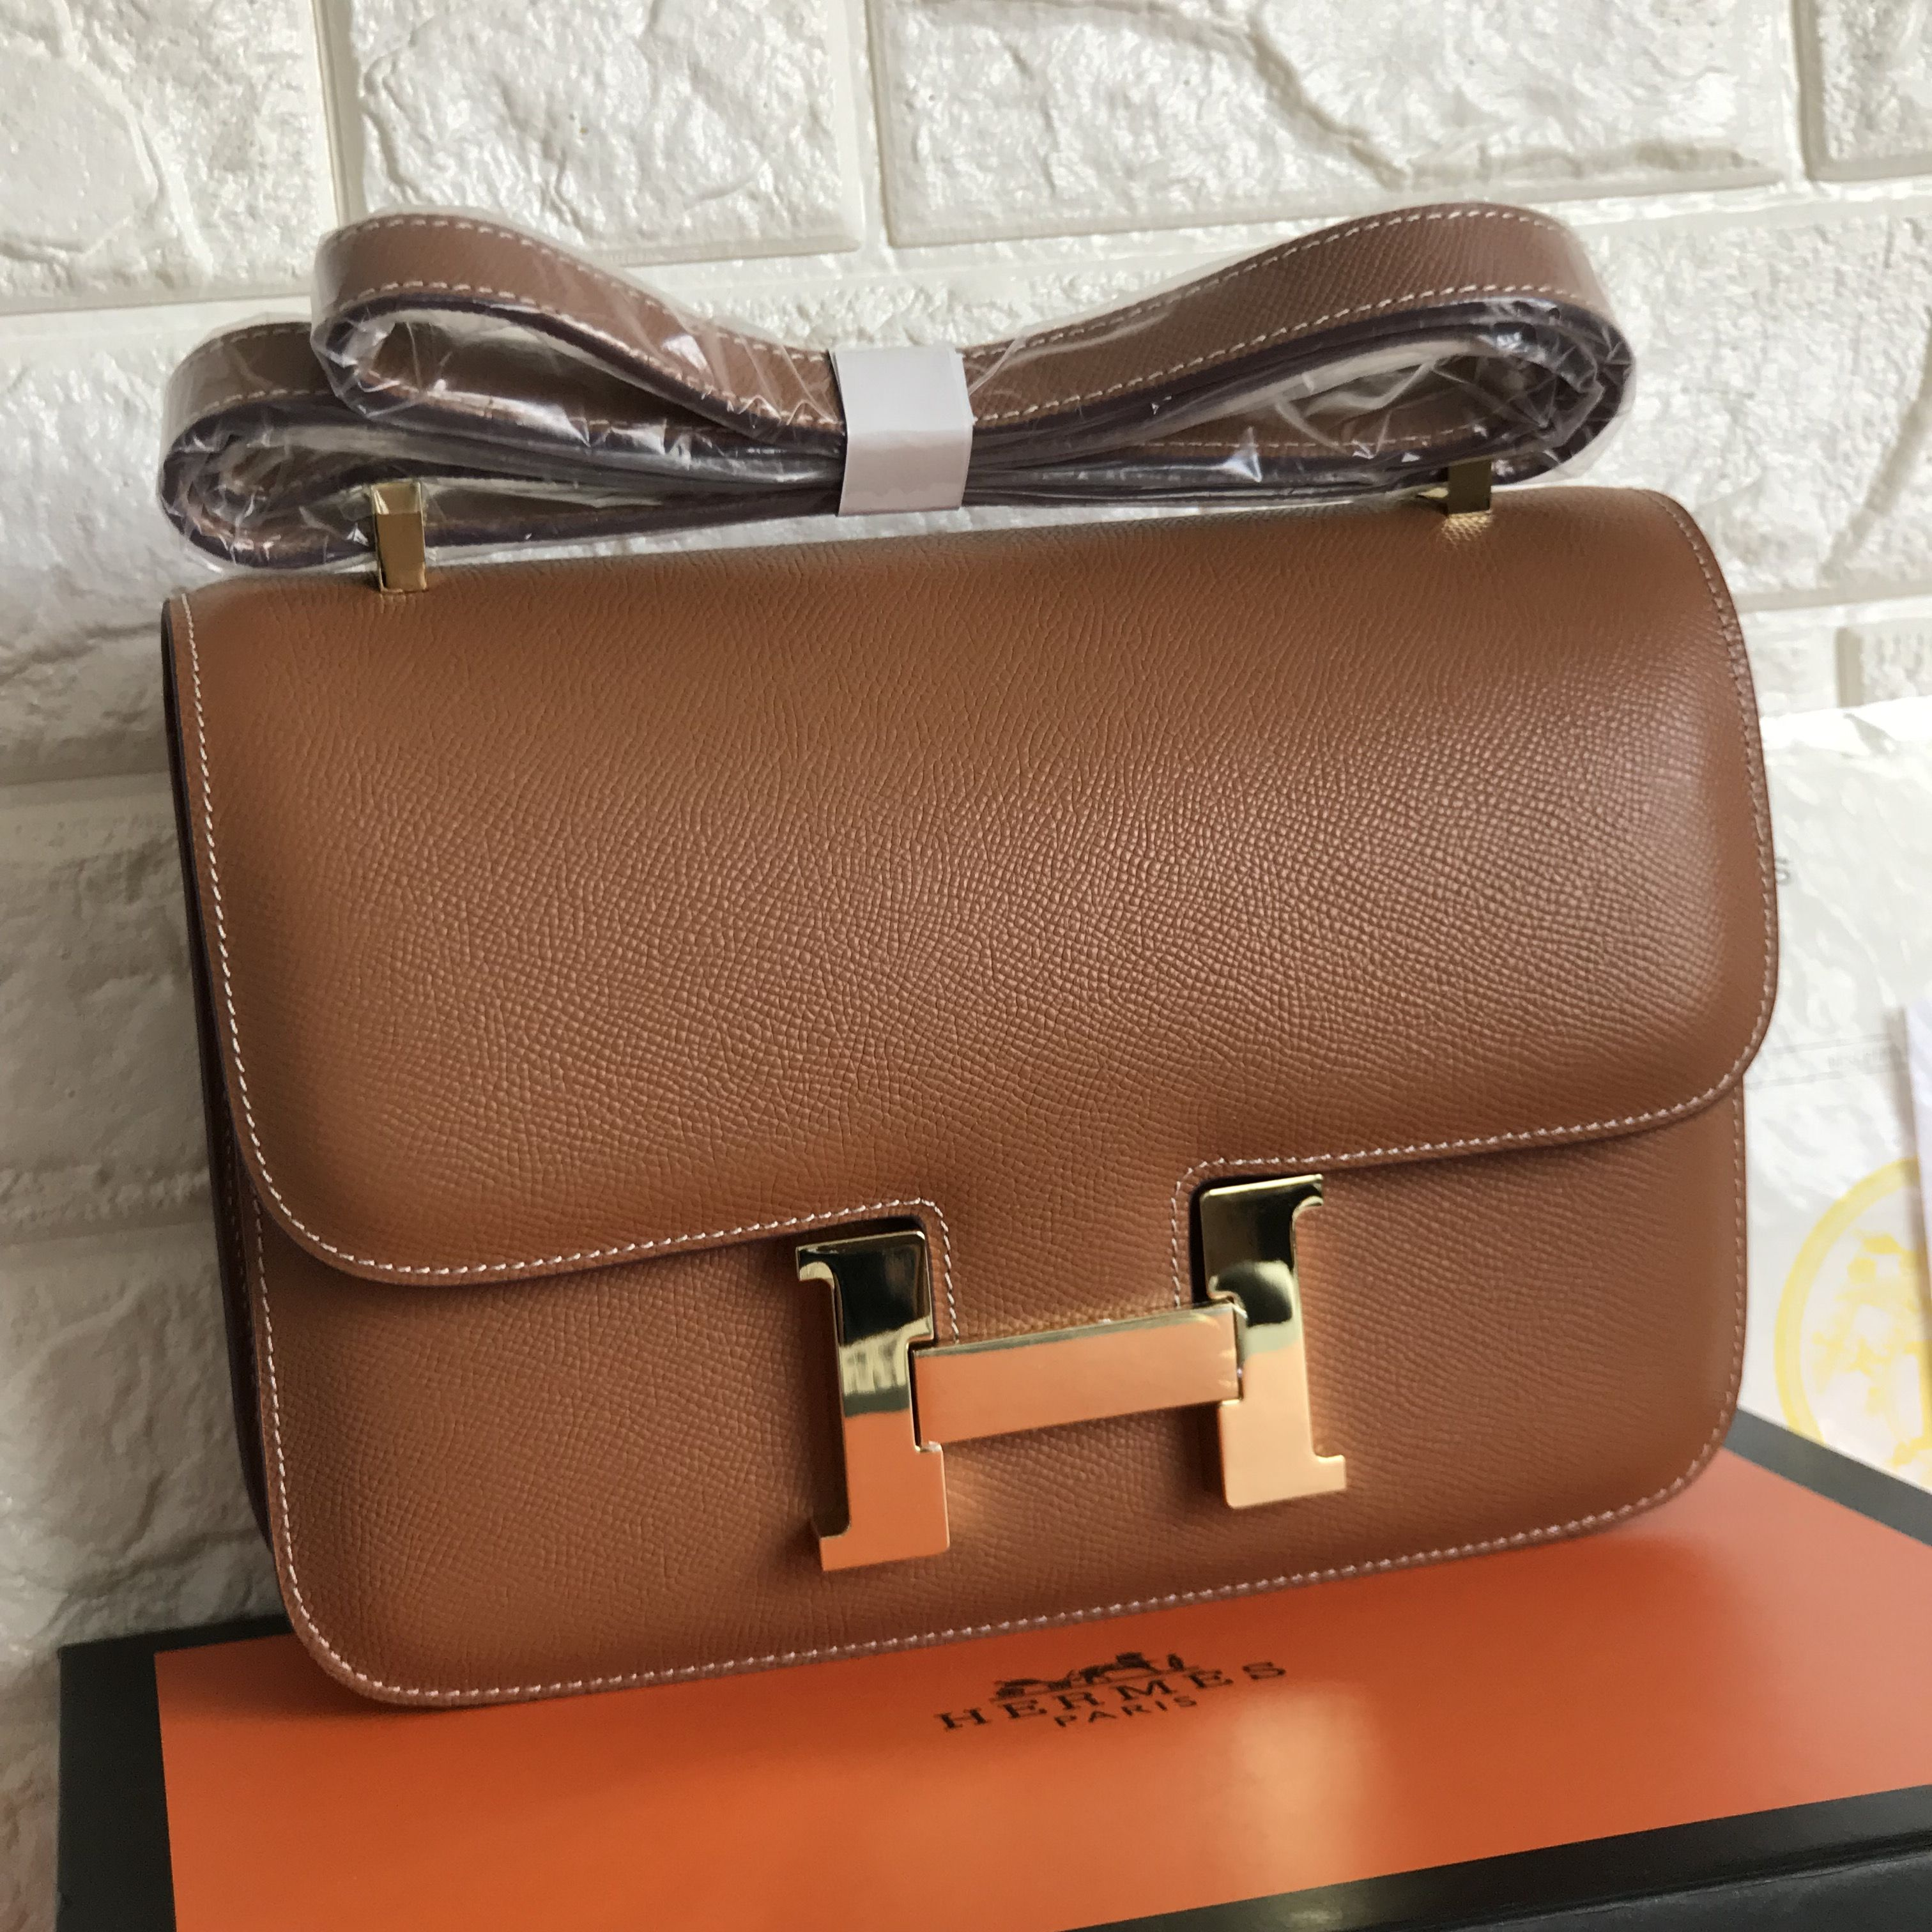 6cda533bec49e Hermes Constance woman cross body sling bag Epsom leather camel brown